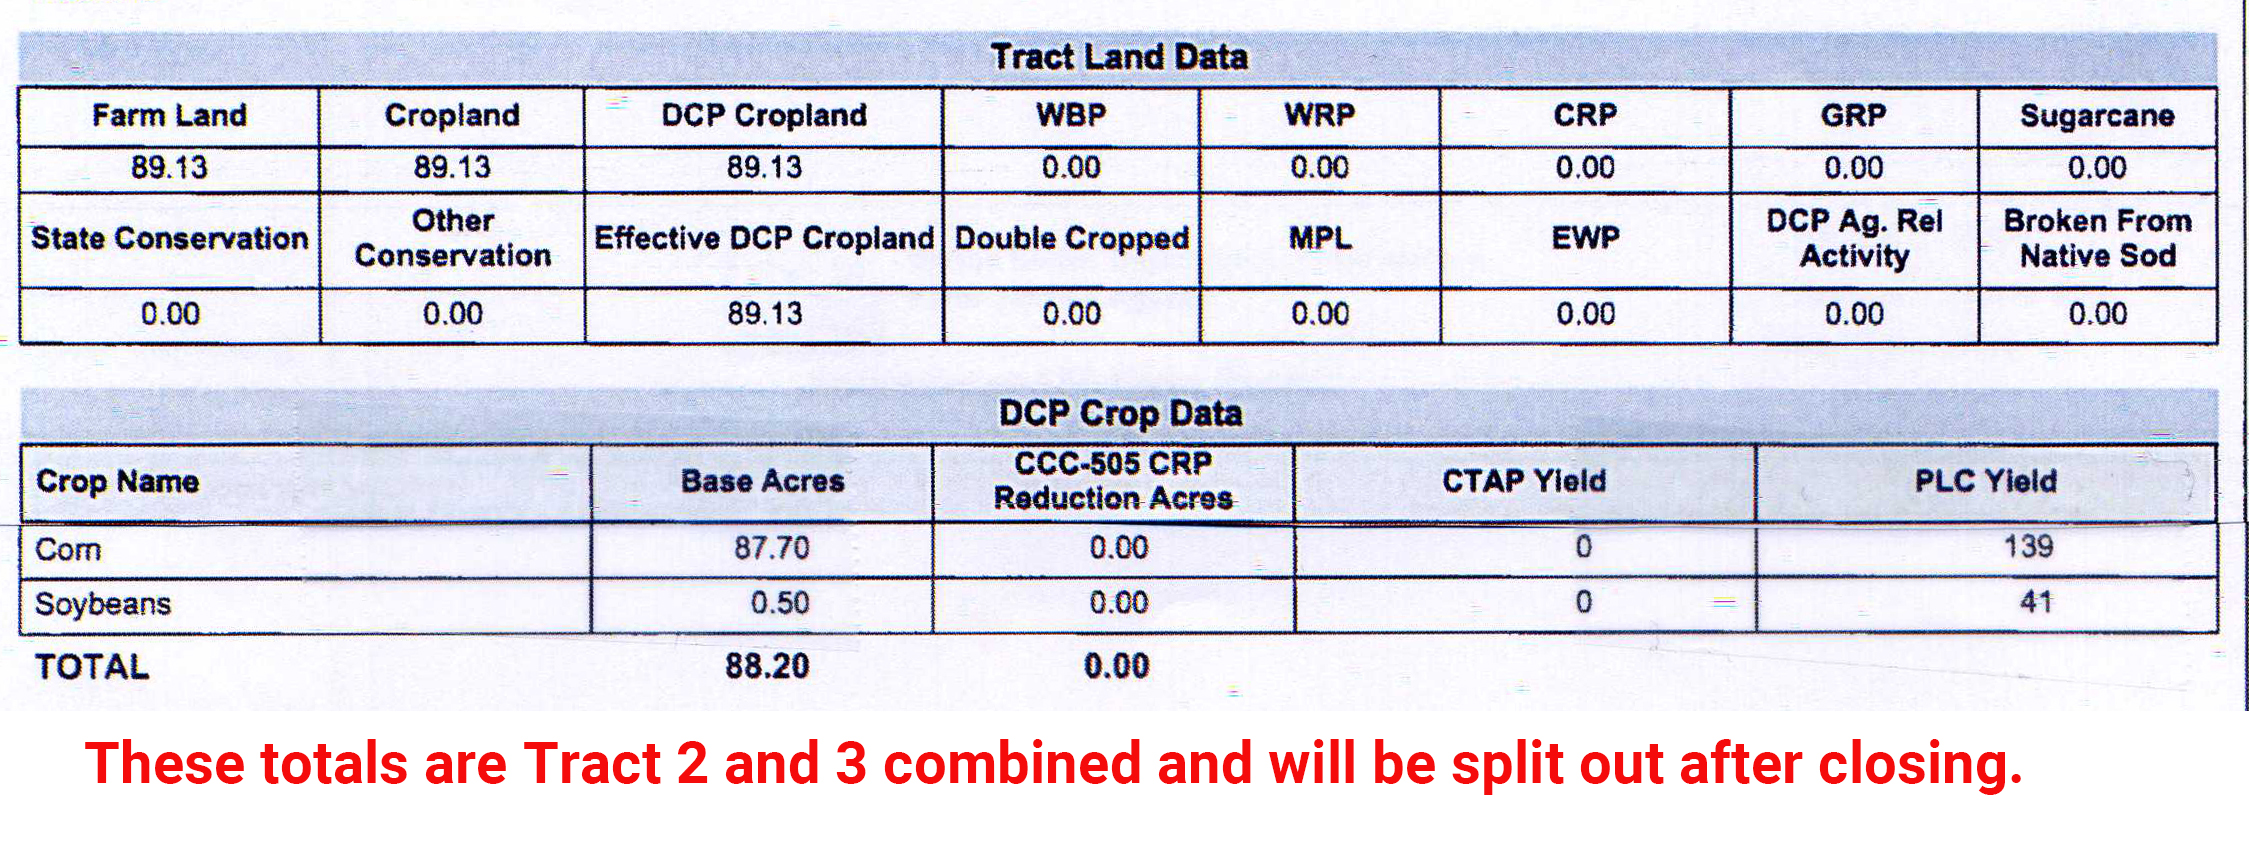 Crop Info Tract 2 & 3_Hawthorne